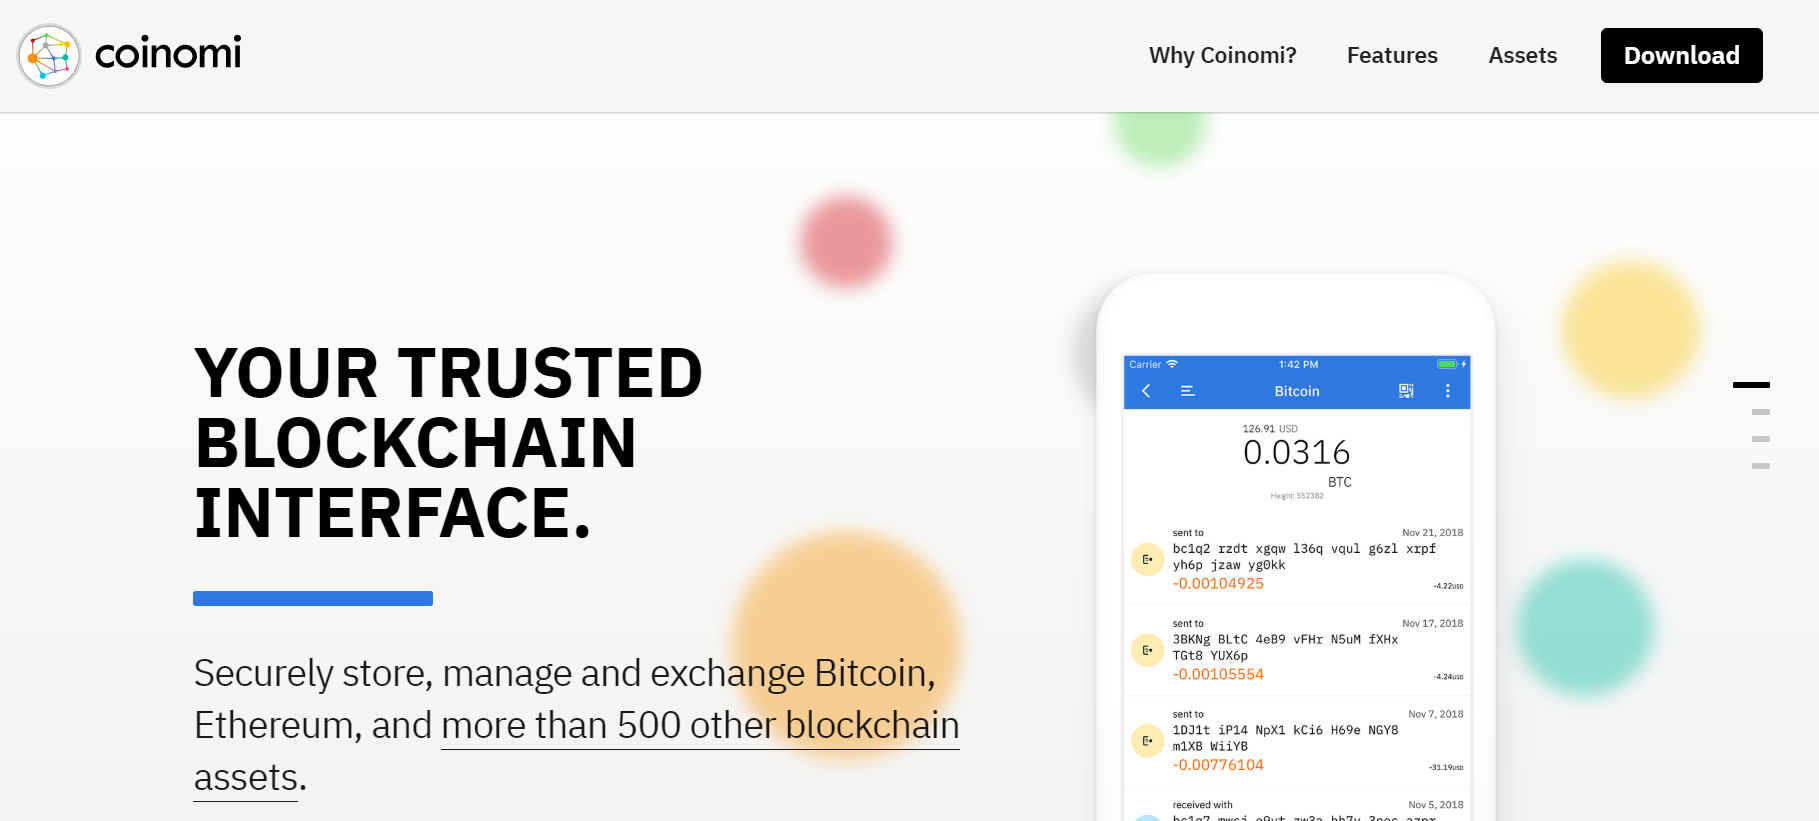 Mobile Crypto has never been easier thanks to Coinomi Decentralized mobile wallet